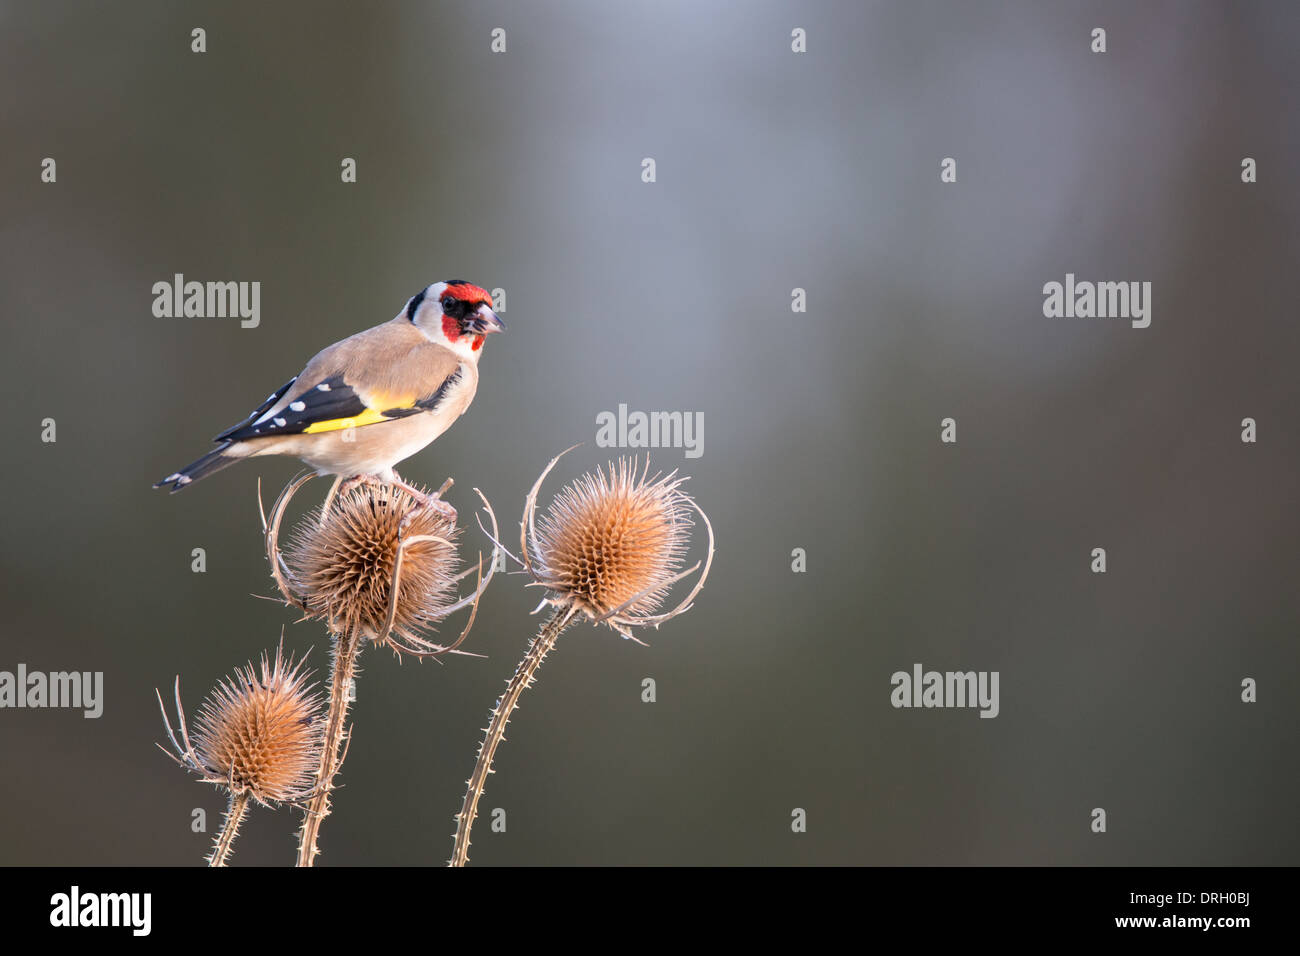 Goldfinch (Carduelis carduelis) on a teasel. - Stock Image